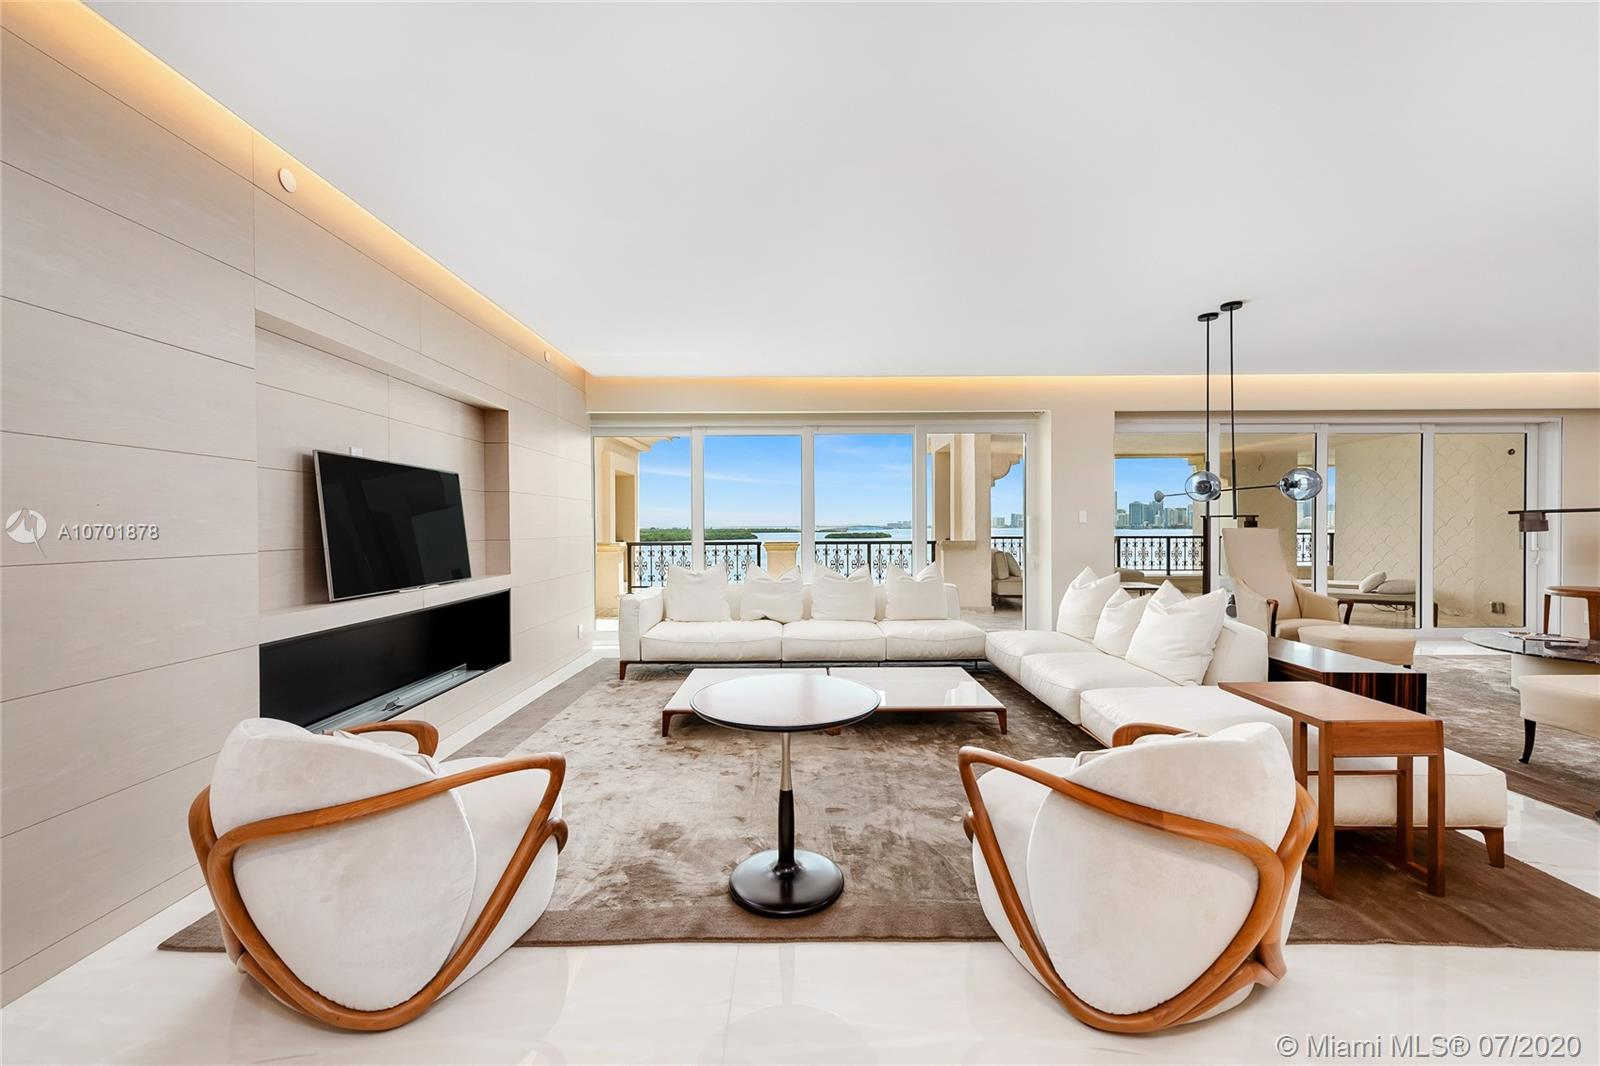 Main Property Image For 5292 Fisher Island Dr #5292